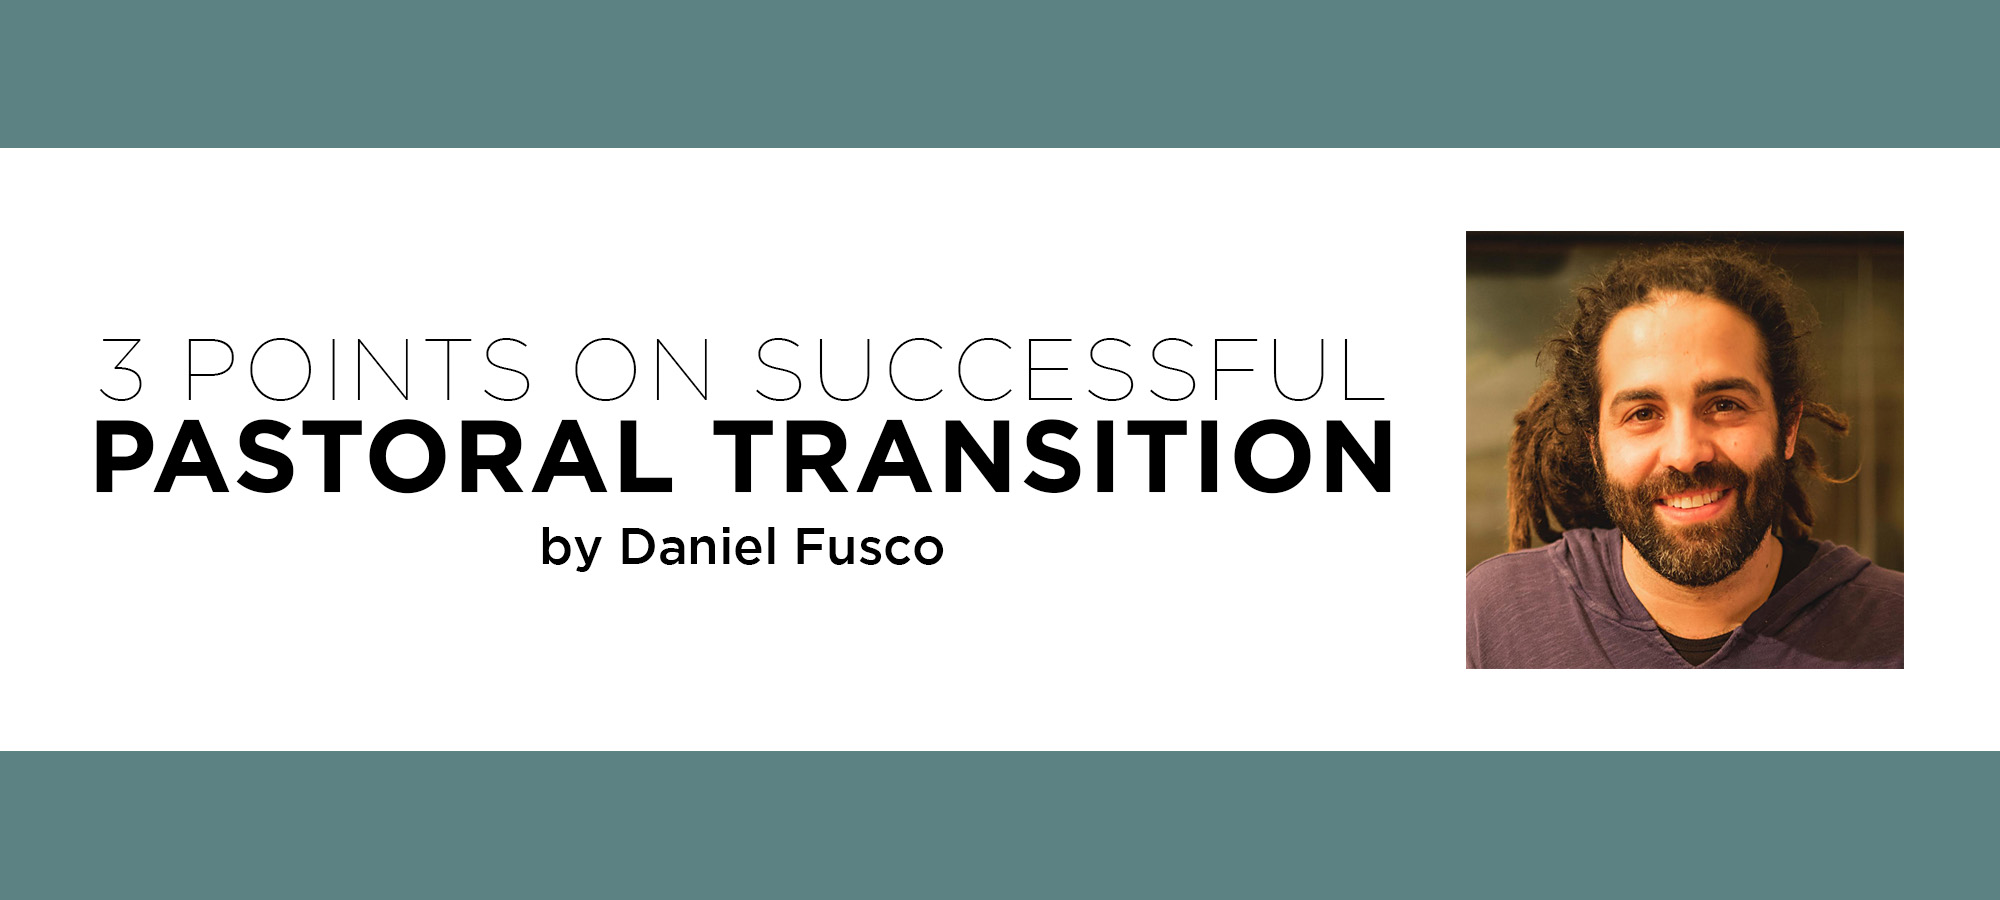 Three Points on Successful Pastoral Transition